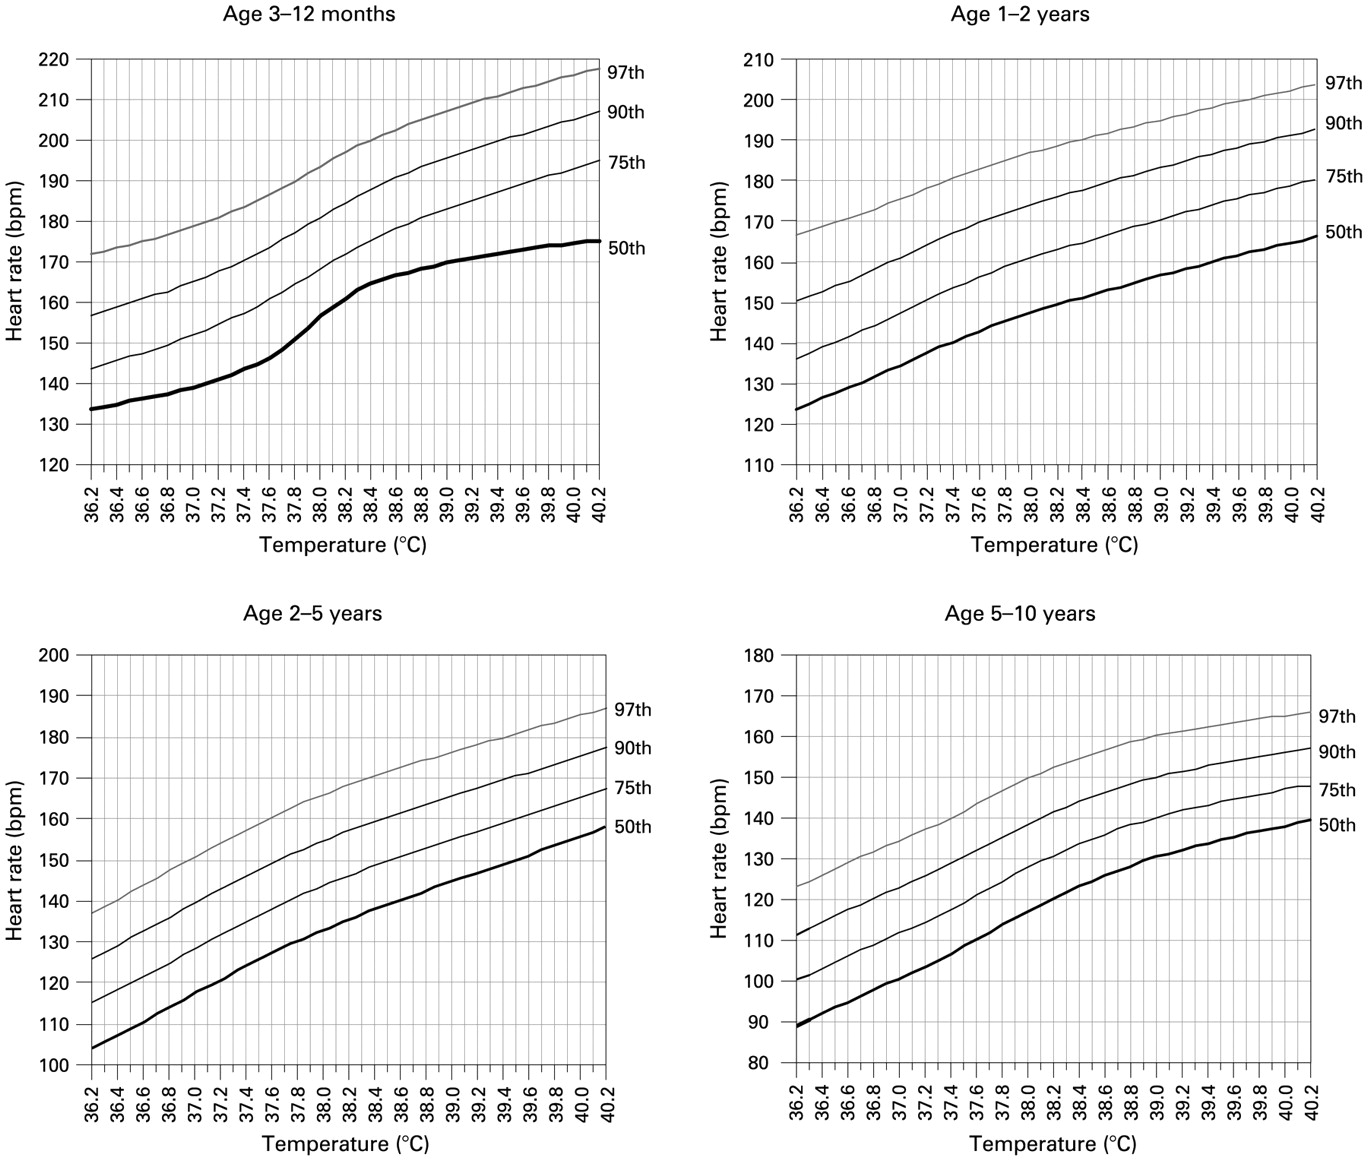 Deriving Temperature And Age Appropriate Heart Rate Centiles For